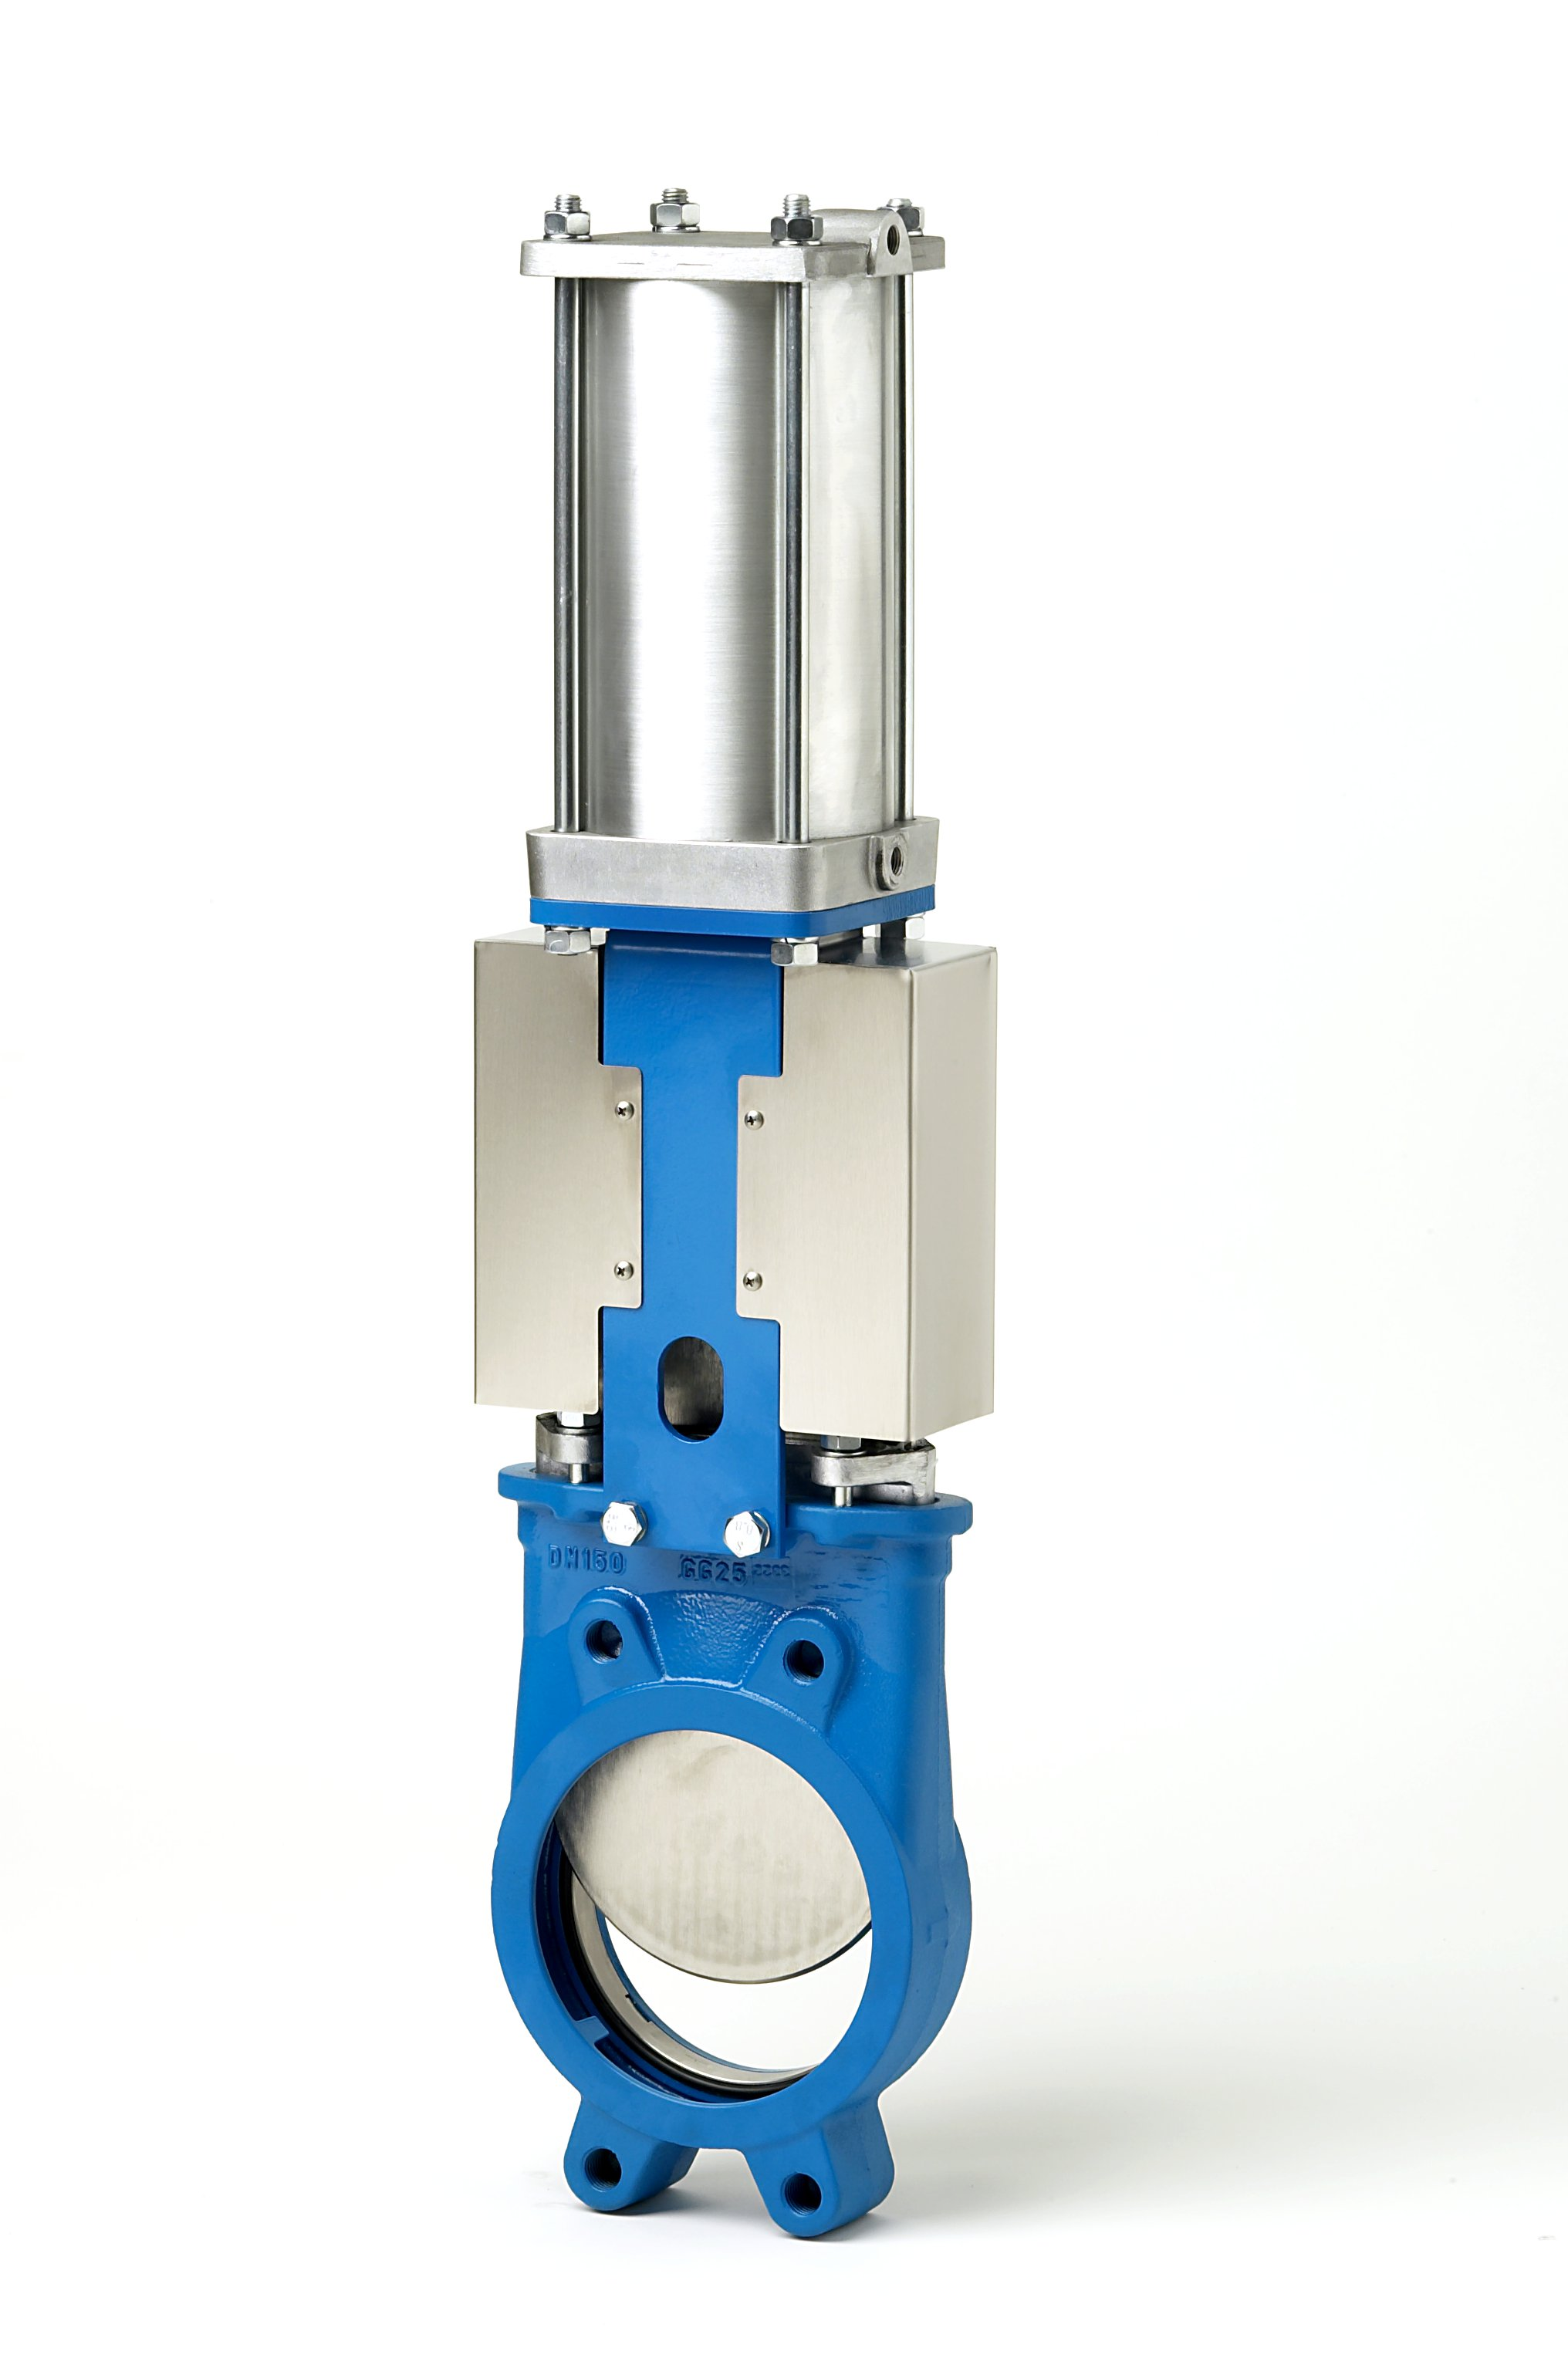 Orbinox gate valves